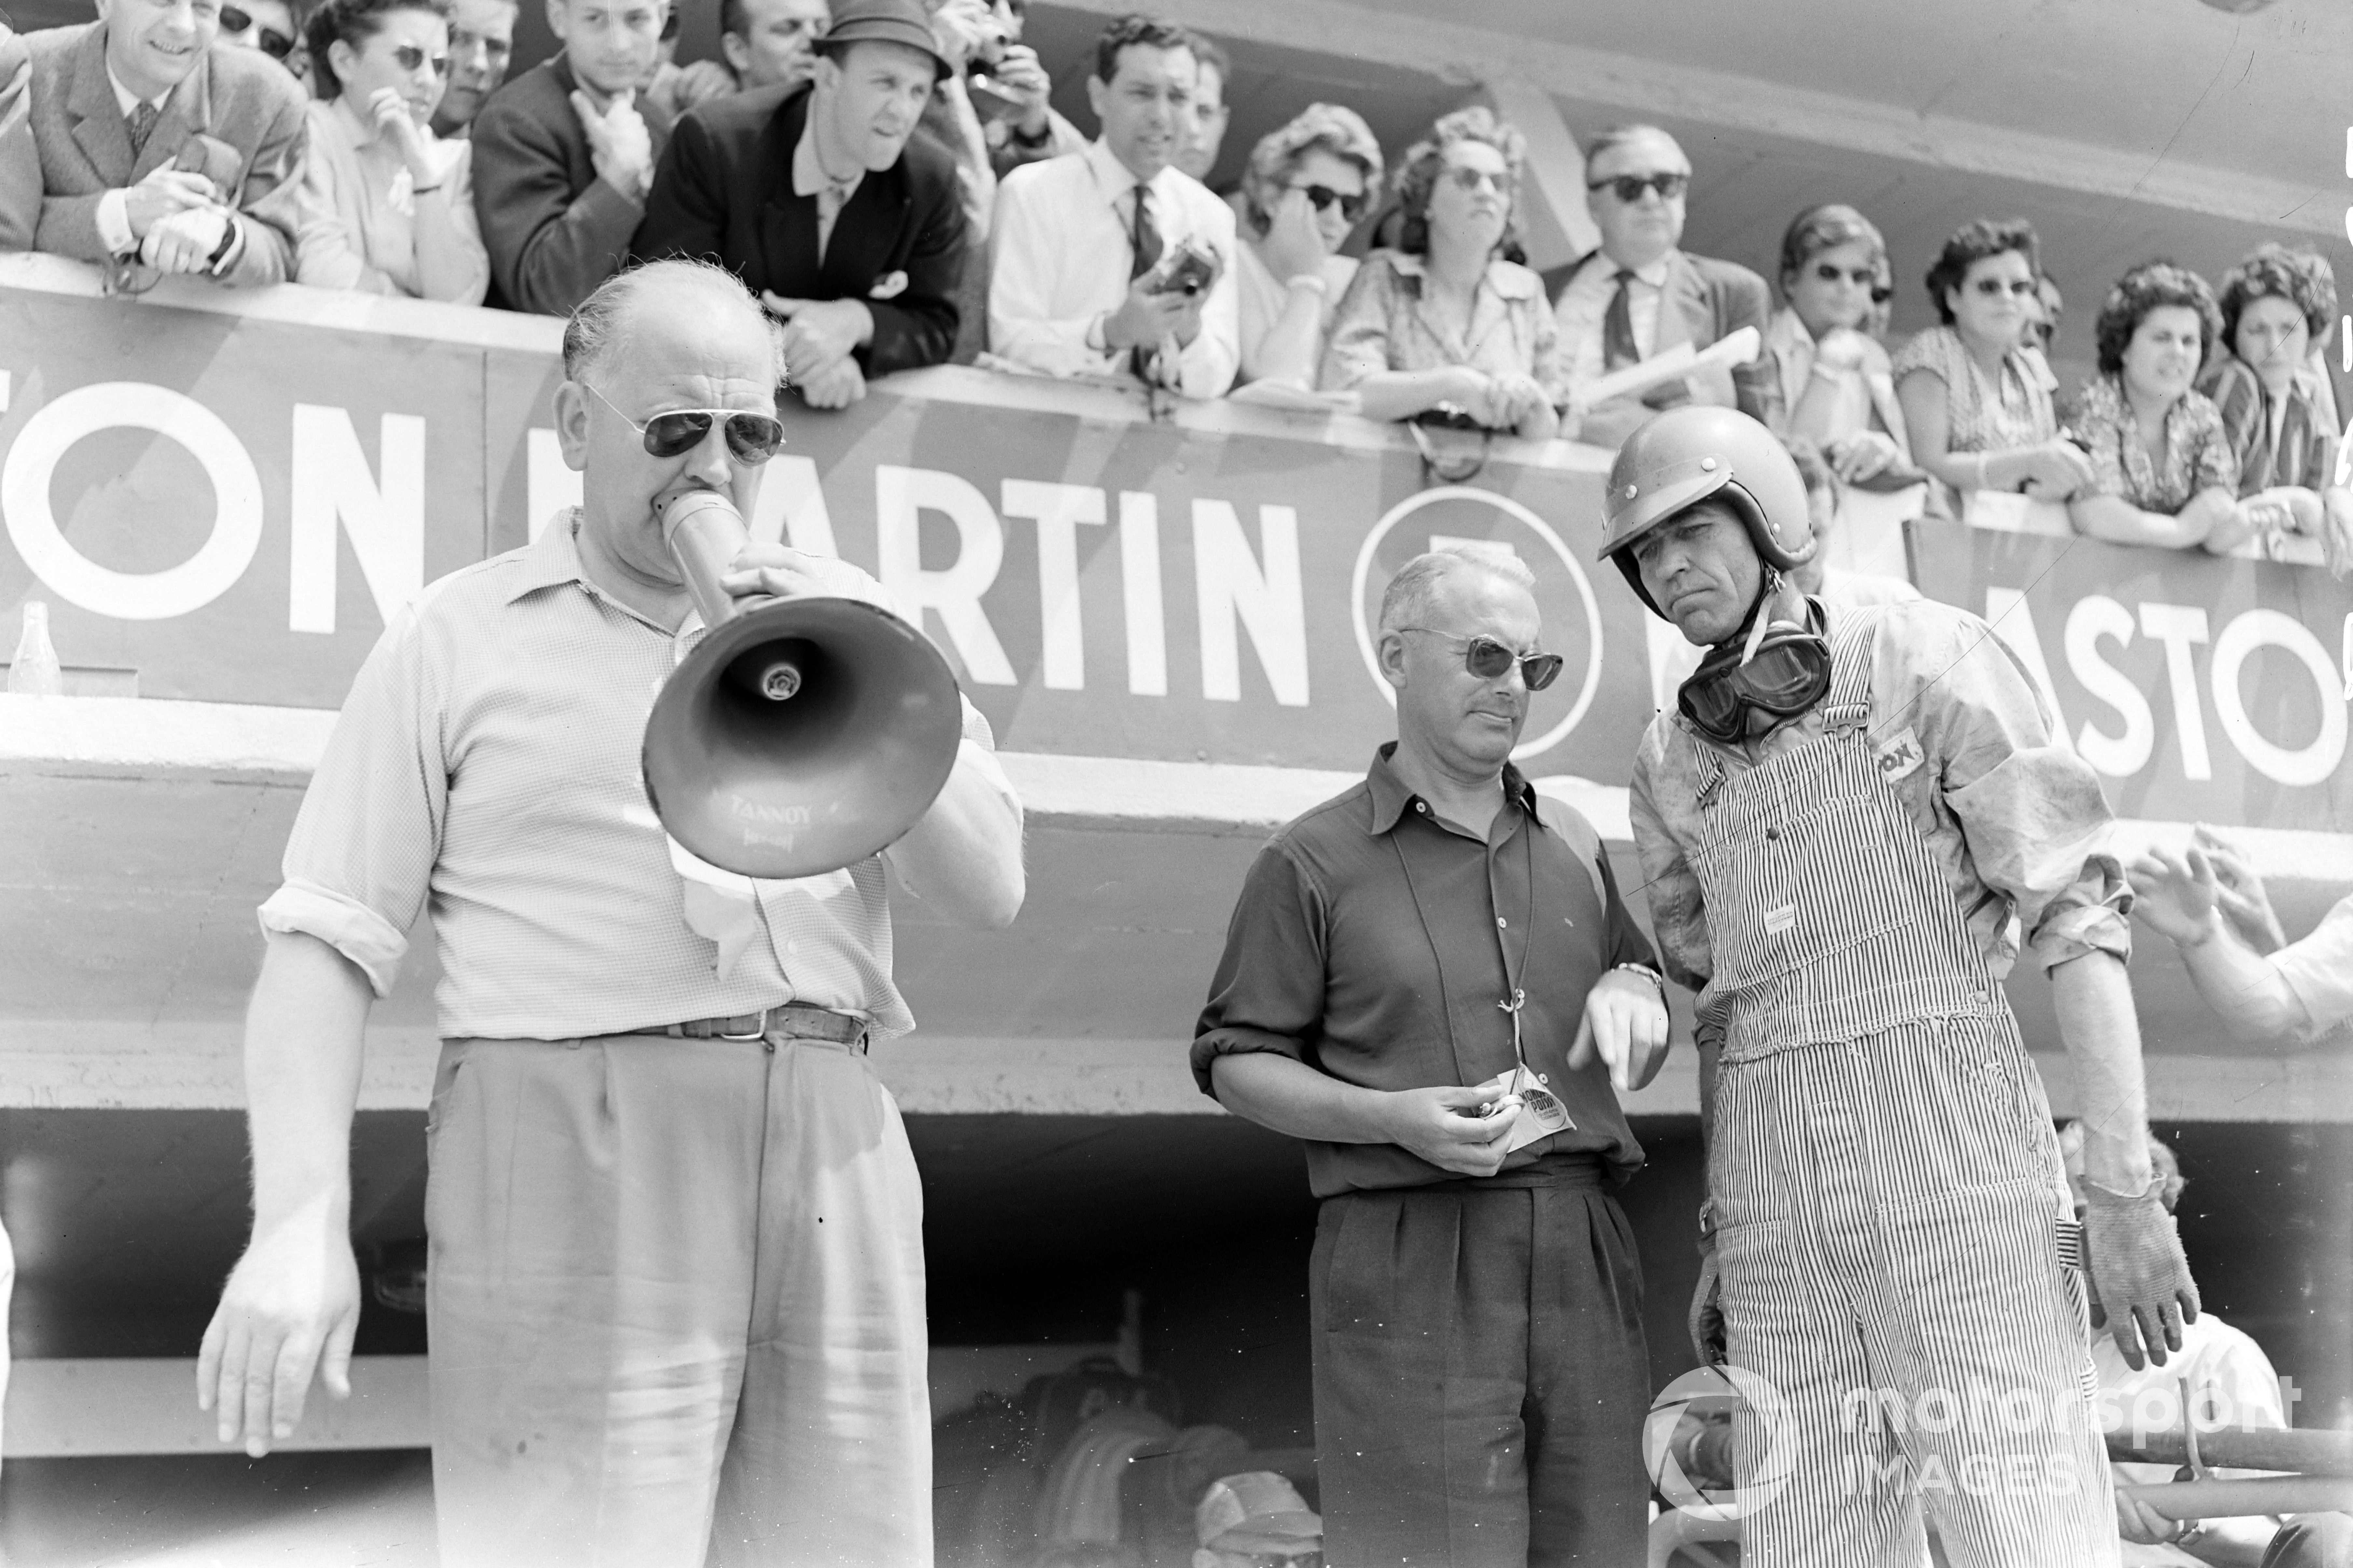 Carroll Shelby (Aston Martin DBR1), 1st position, waits in the pits for the car to come in with Reg Parnell, on megaphone and Team Owner and Chief Designer, David Brown, 1959 Le Mans 24 Hours